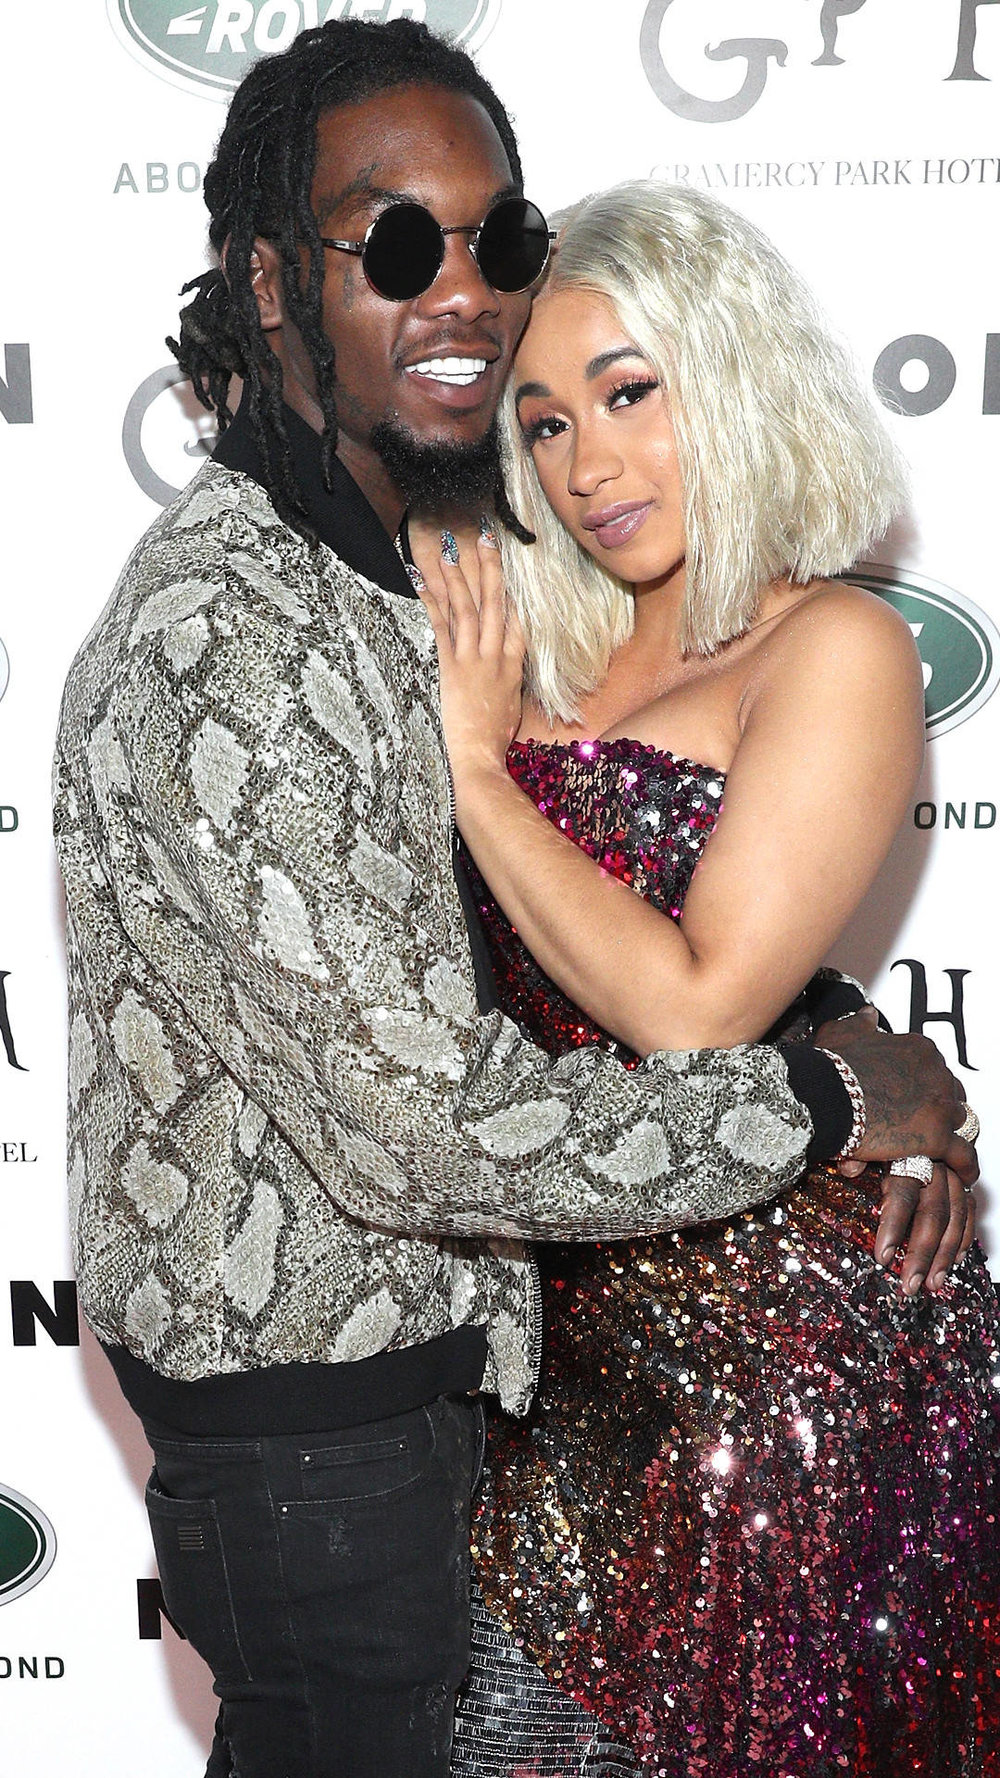 Offset and Cardi